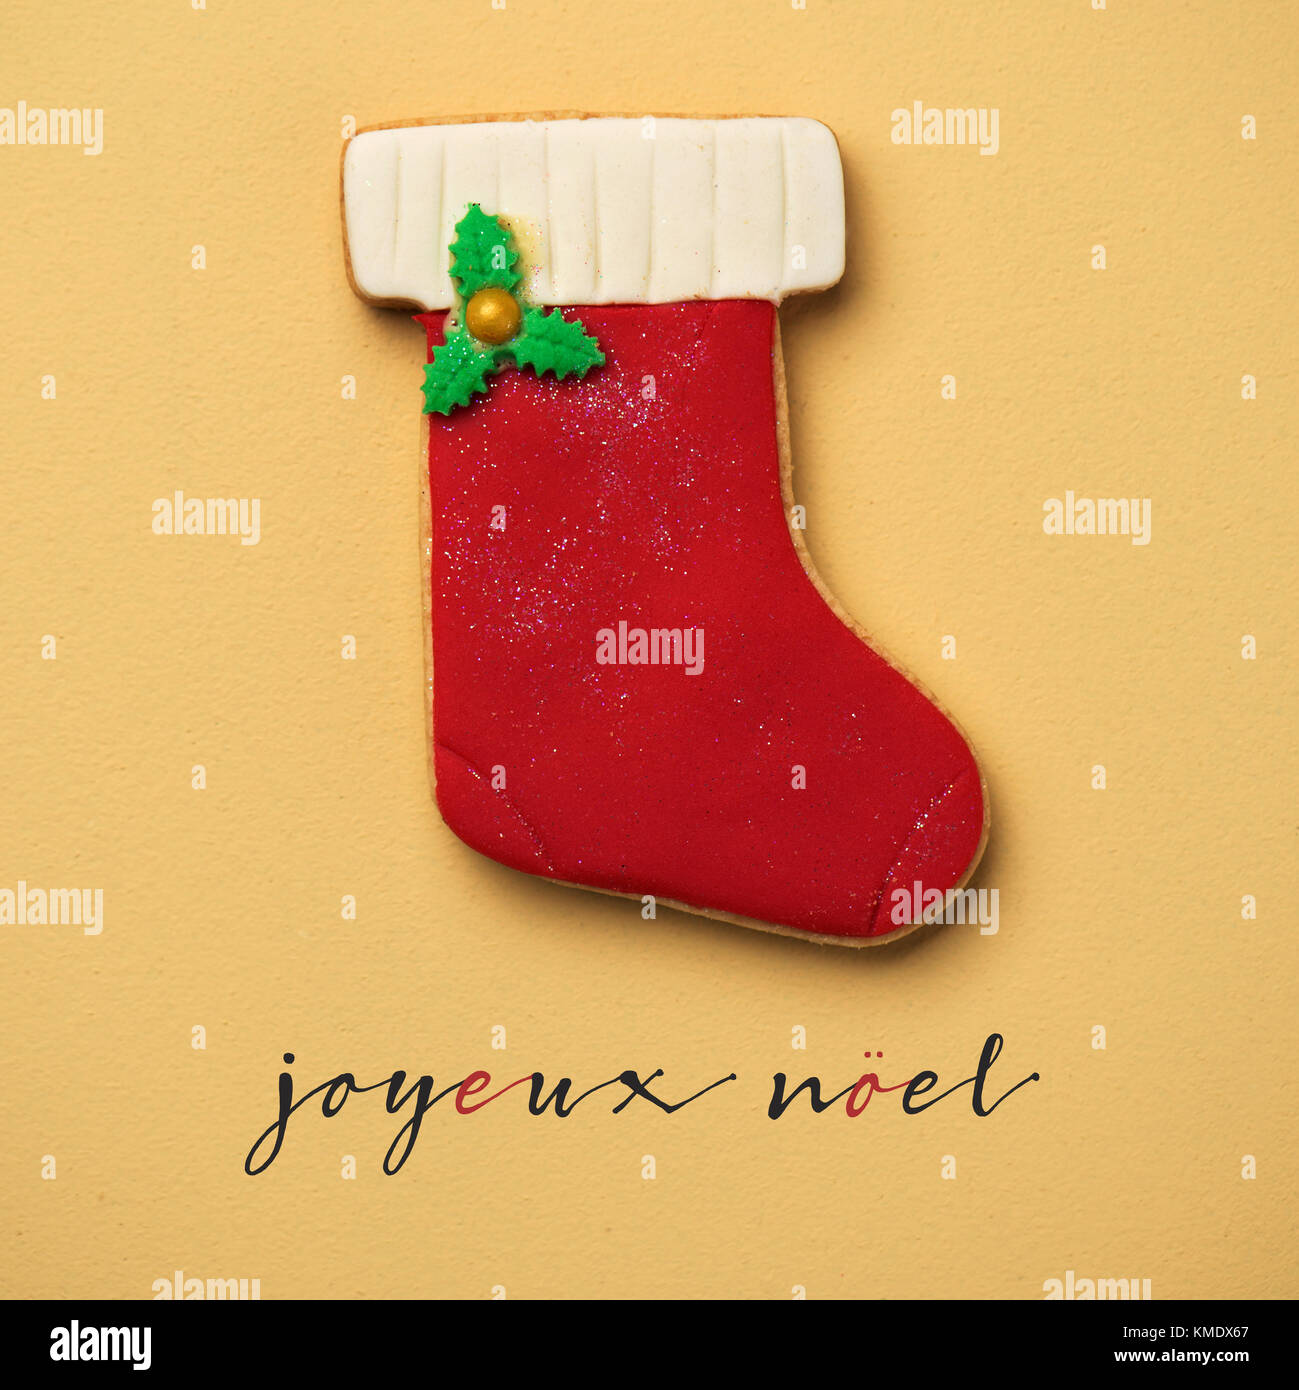 a coloroful cookie in the shape of a christmas stocking and the text joyeux noel, merry christmas in french, on - Stock Image